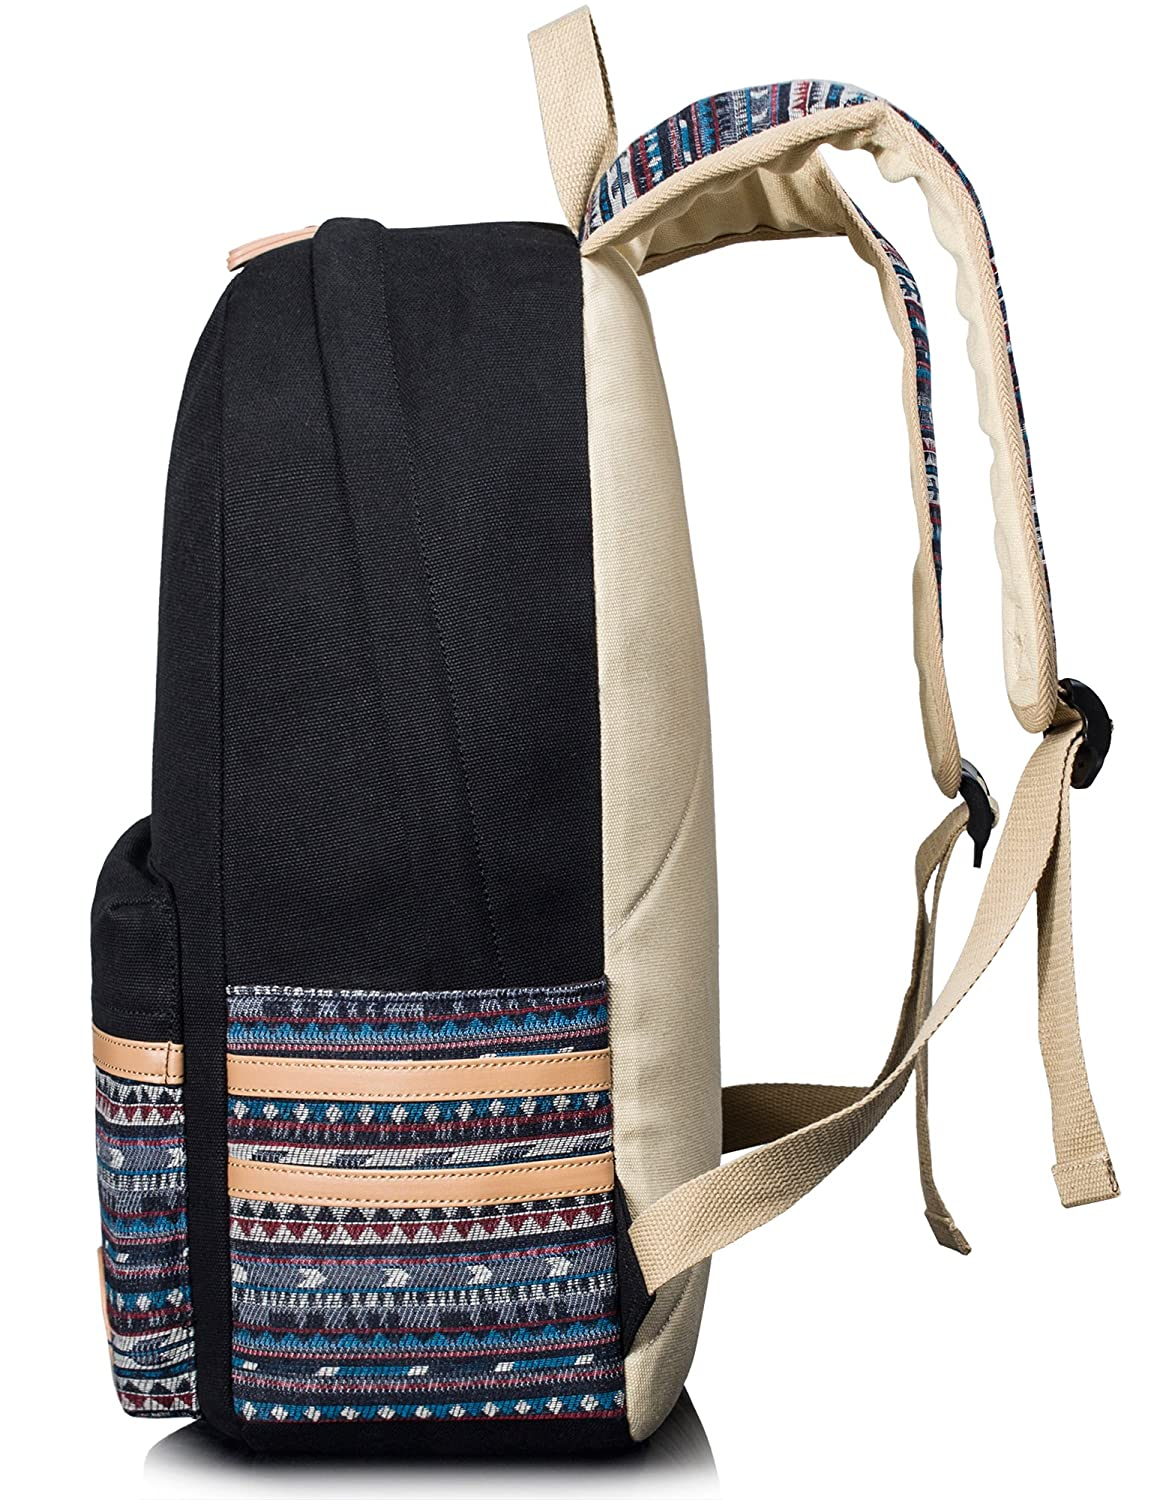 Leaper casual style lightweight canvas laptop bagcute backpacks leaper casual style lightweight canvas laptop bagcute backpacks shoulder bag school backpack travel bag navy blue amazon bags wallets luggage fandeluxe Image collections